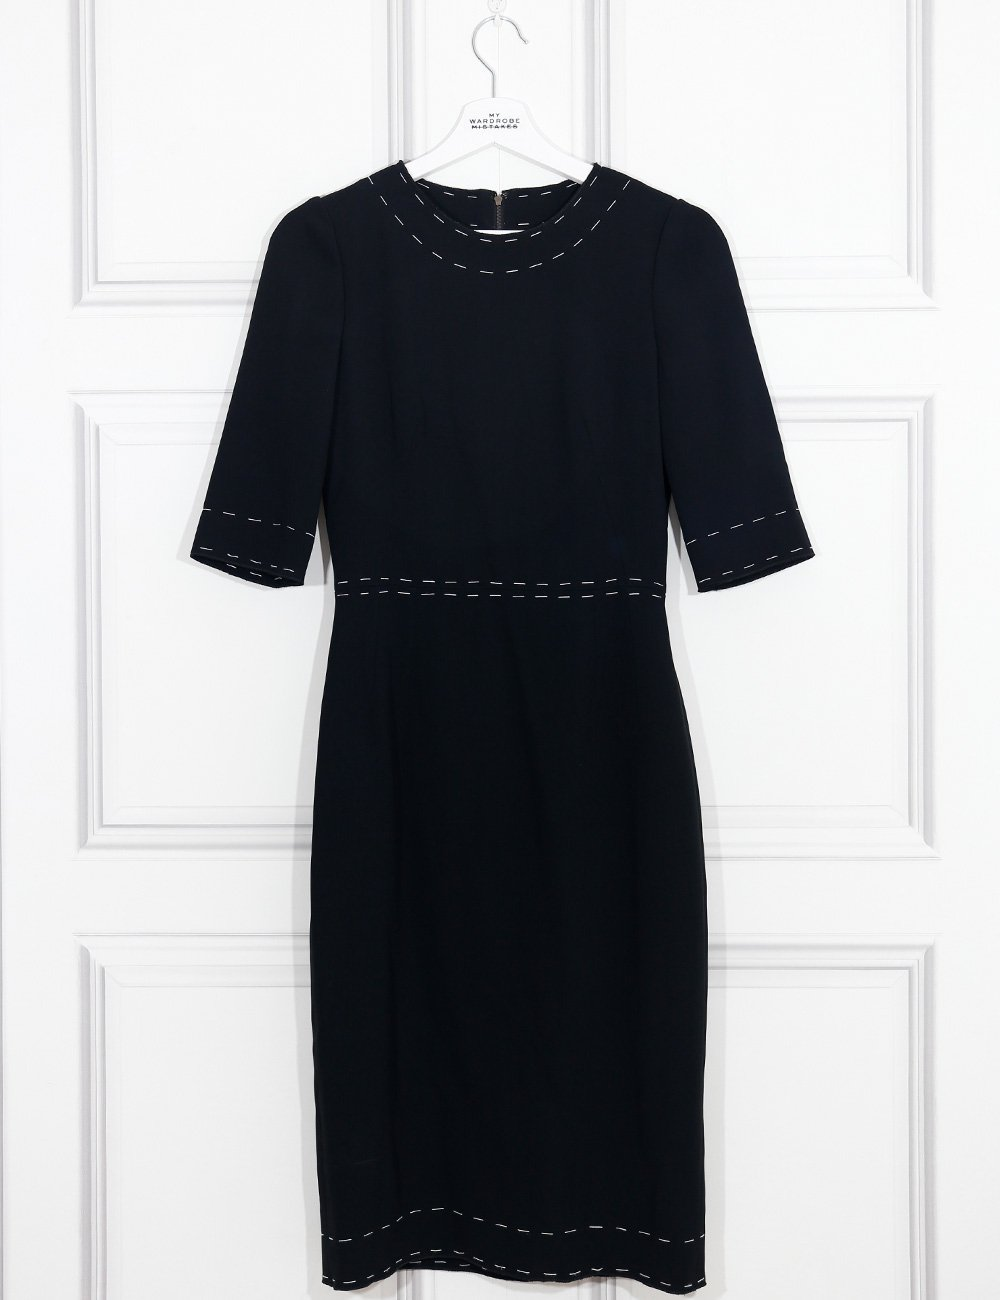 Dolce&Gabbana black mid-length dress with white stitching 8Uk- My Wardrobe Mistakes